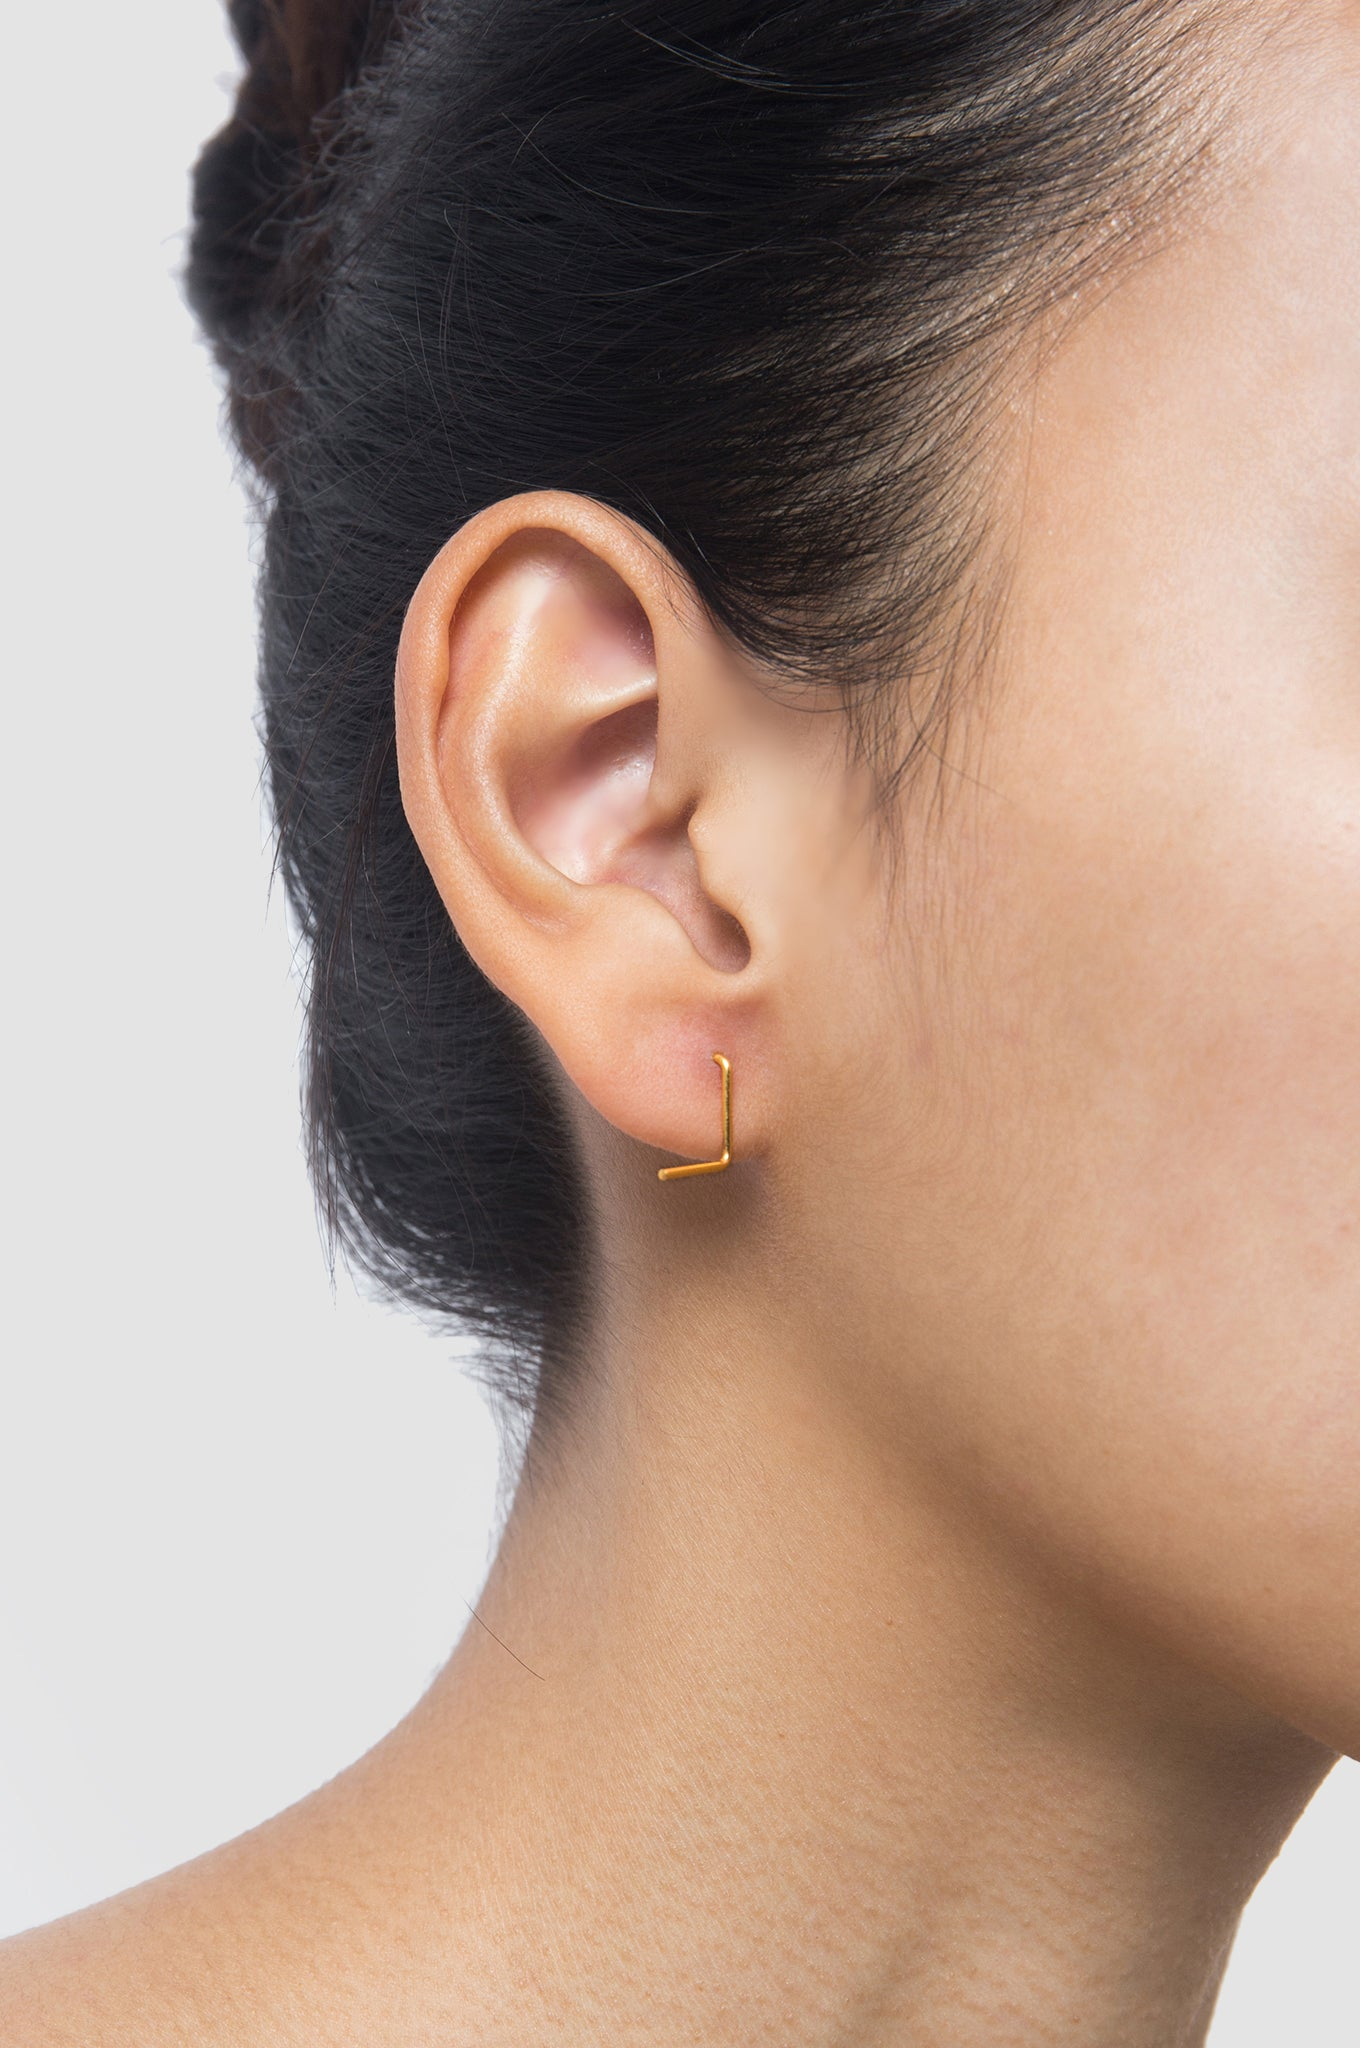 S-Shaped Four Earring